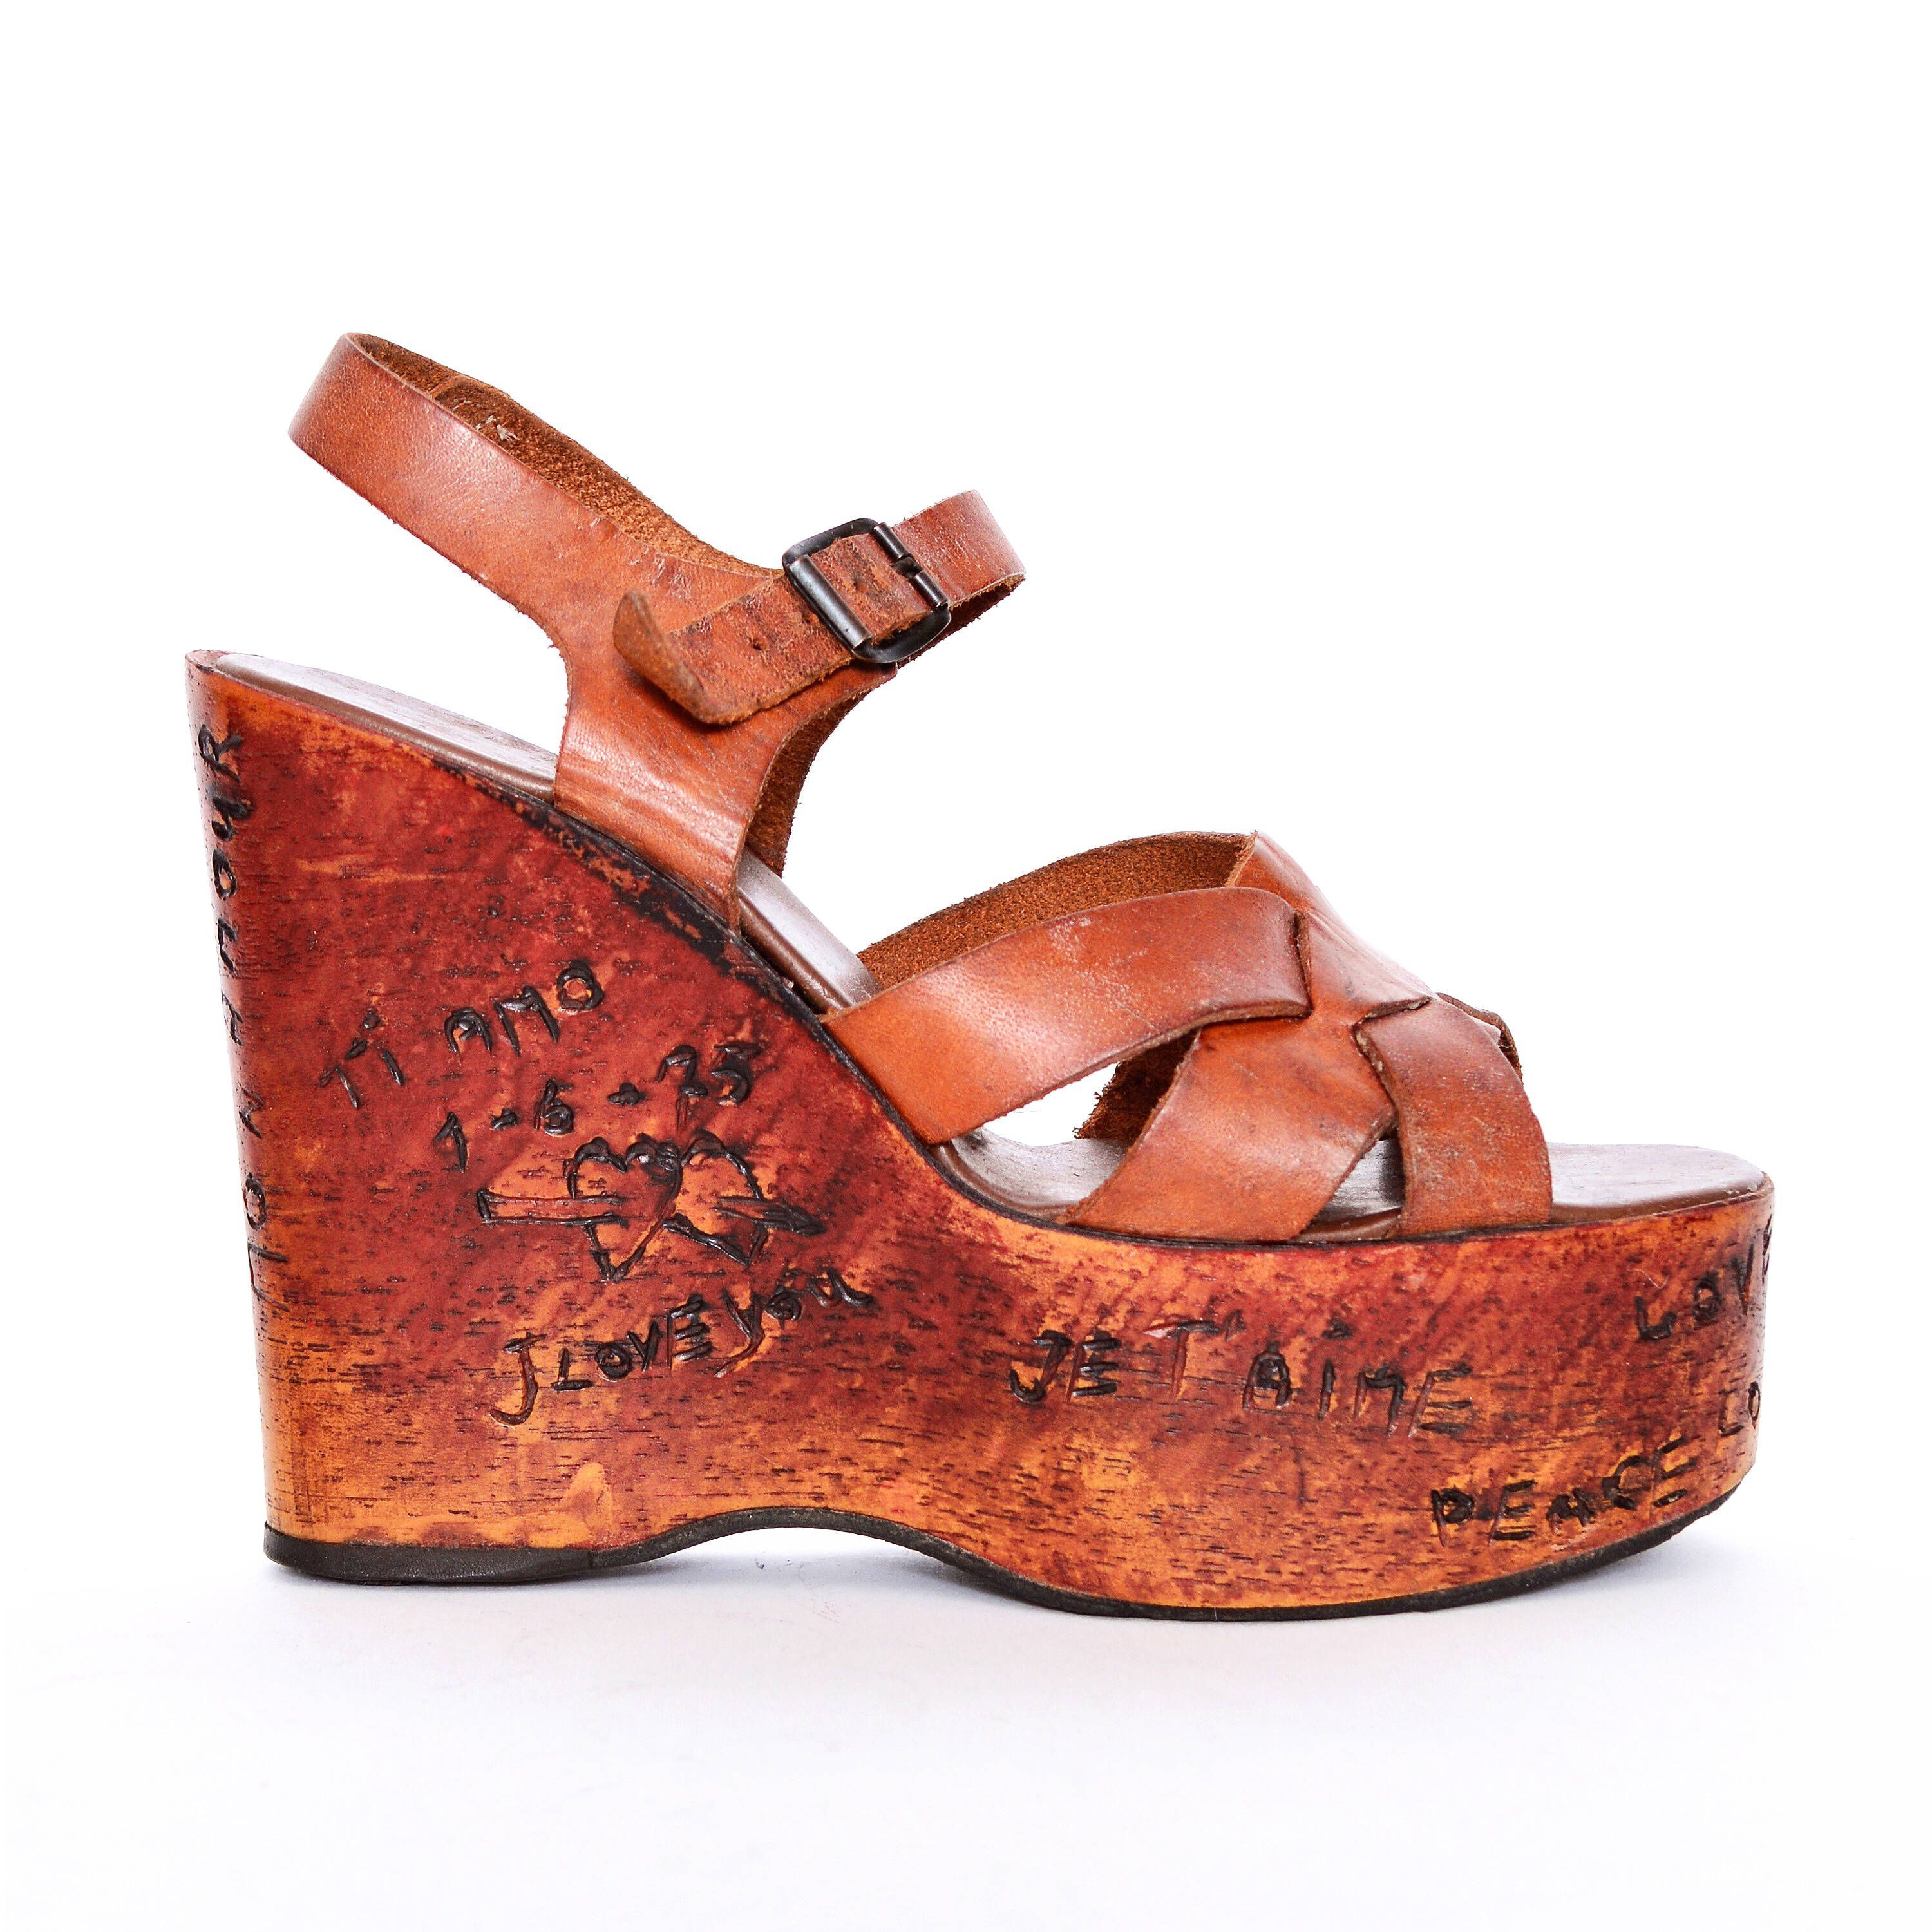 9f659250003d67 70s boho Platform Leather Sandals shoes 7 wood style wedge platforms 1970s  vintage Hippie disco brown 1940s 40s pinup heel wedges Cointrelle